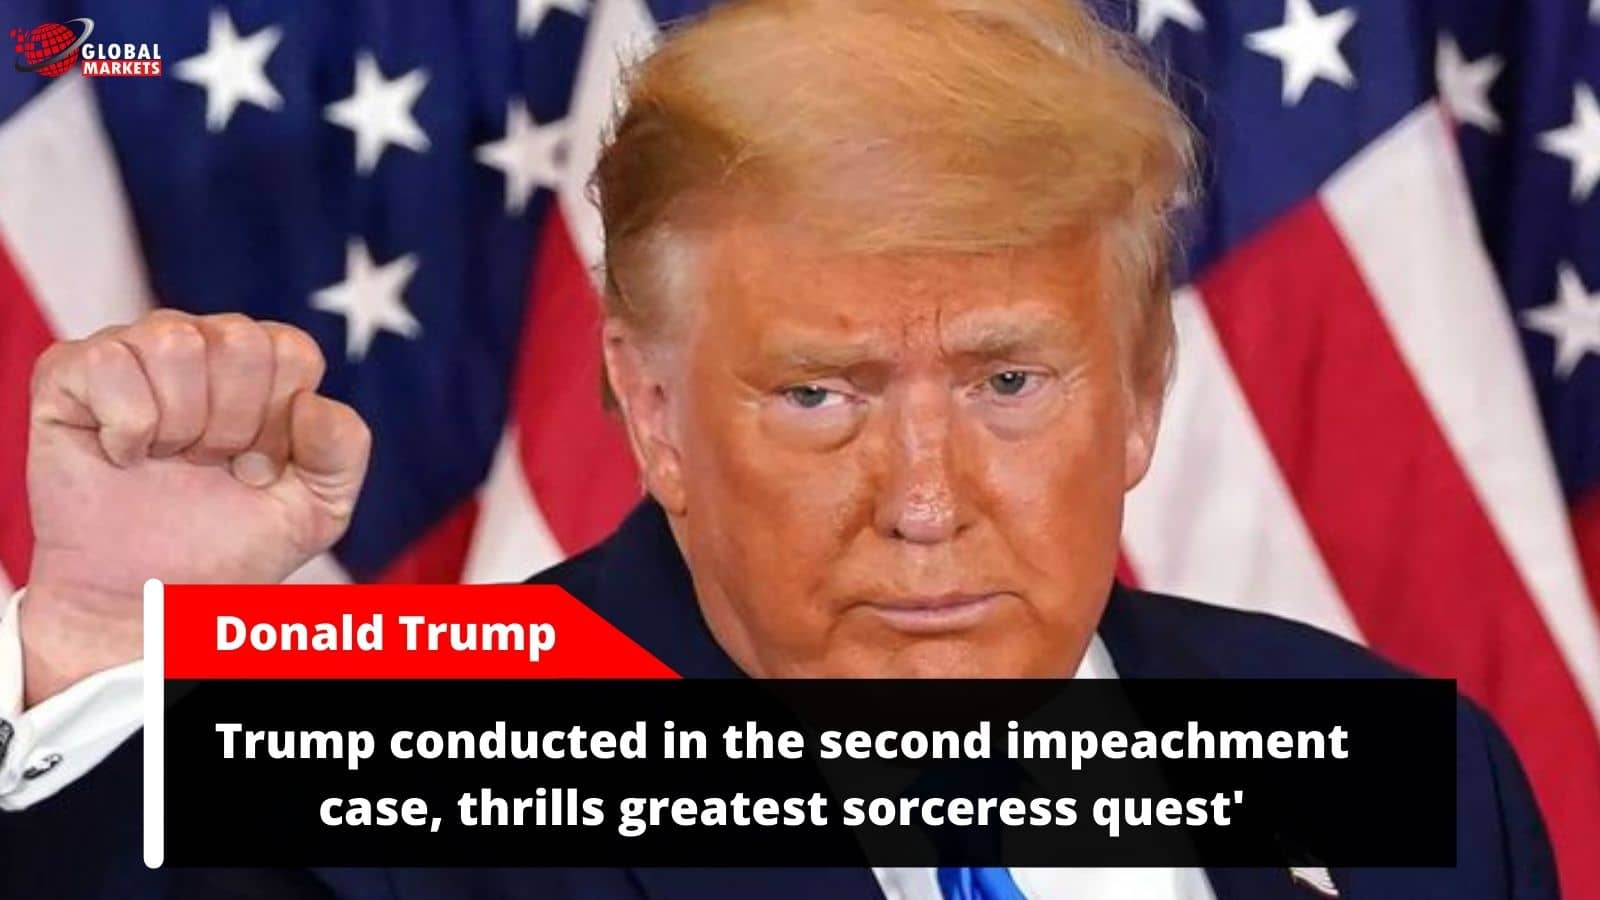 Trump conducted in the second impeachment case, thrills greatest sorceress quest'